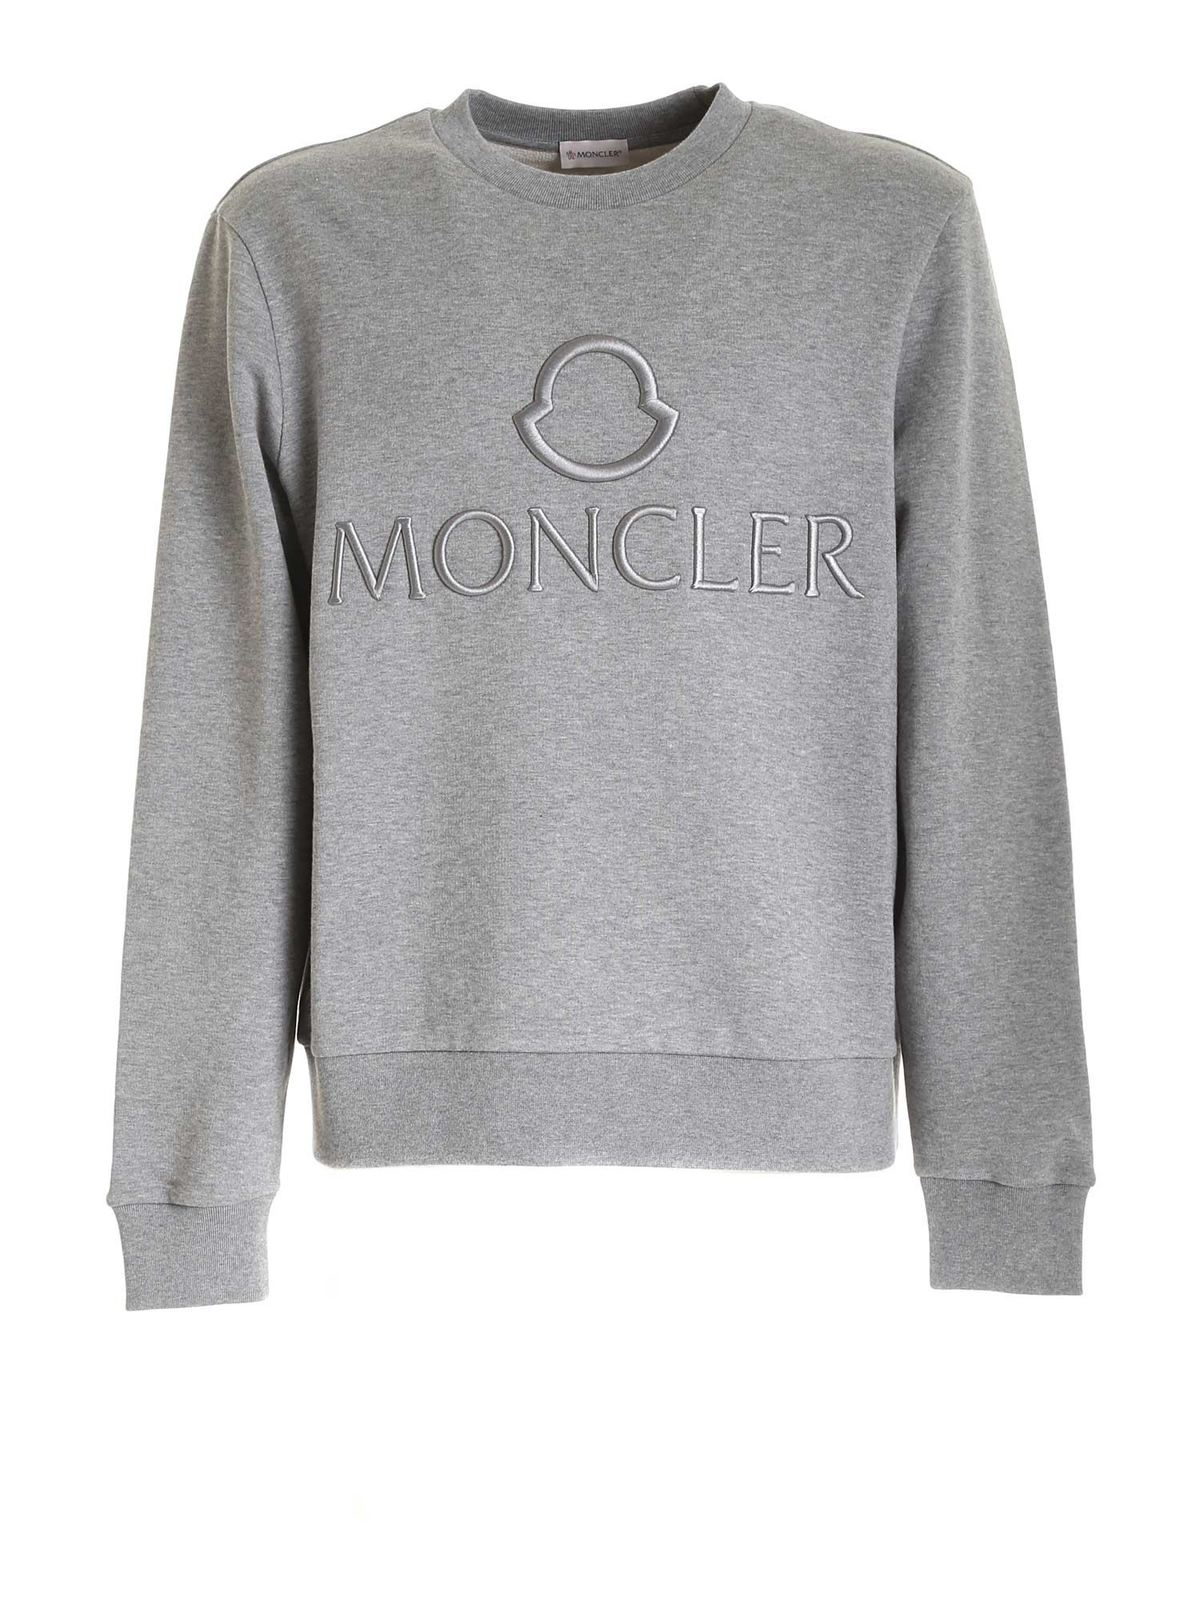 Moncler LOGO CREWNECK SWEATSHIRT IN GREY